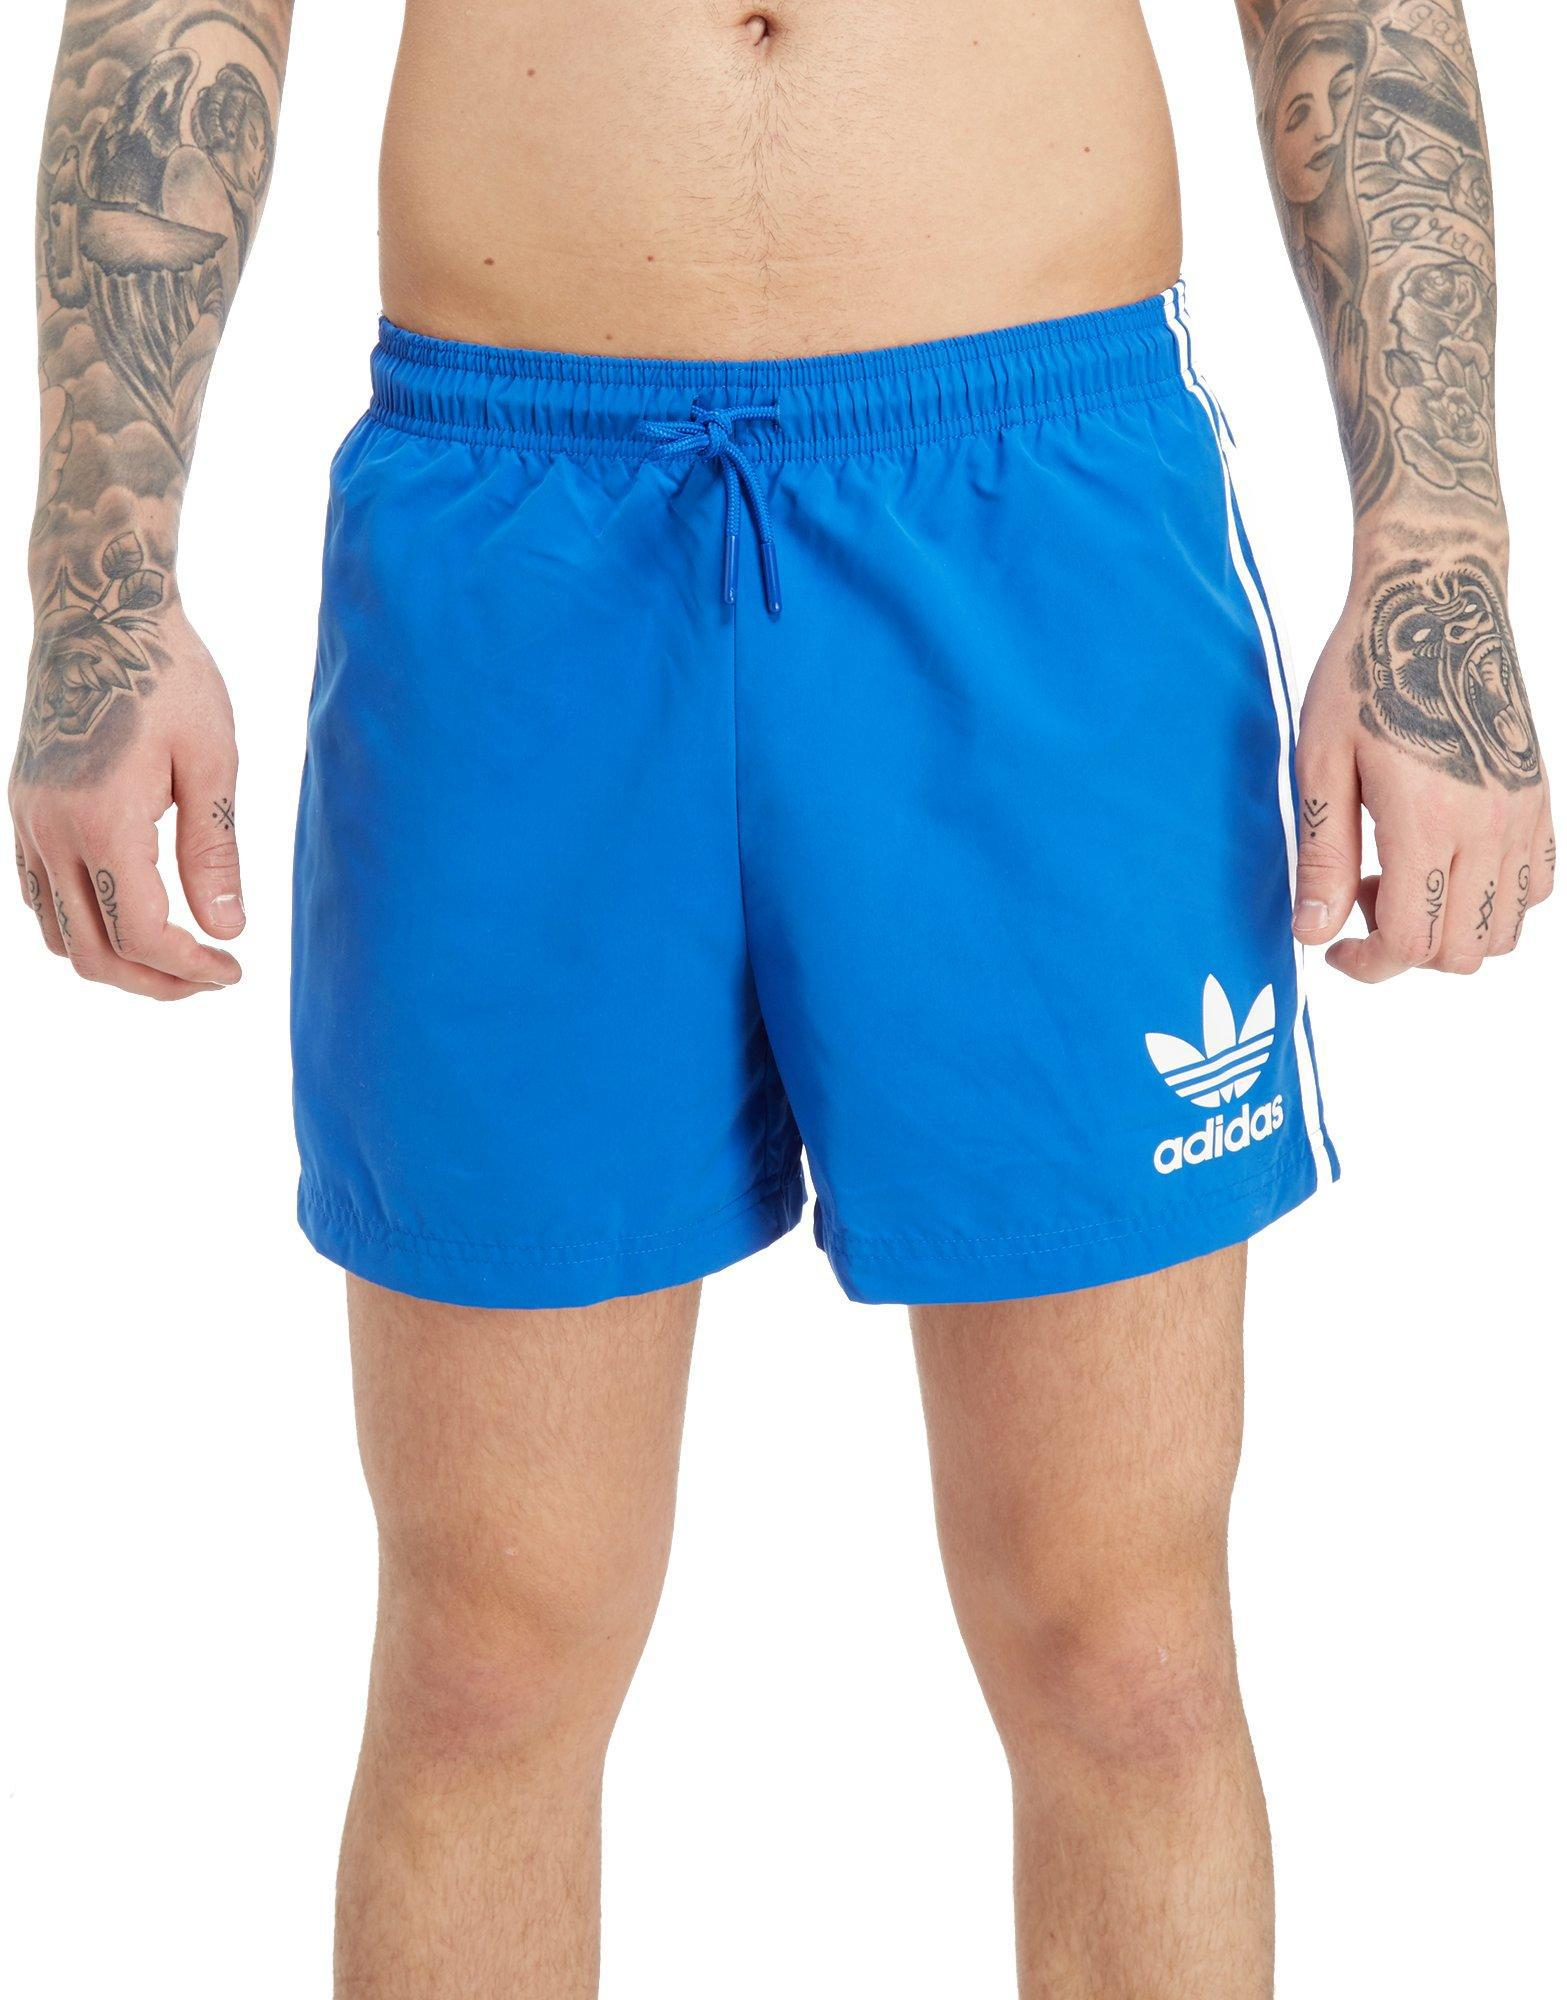 cab920a4a49e9f adidas Originals California Swimshorts in Blue for Men - Lyst